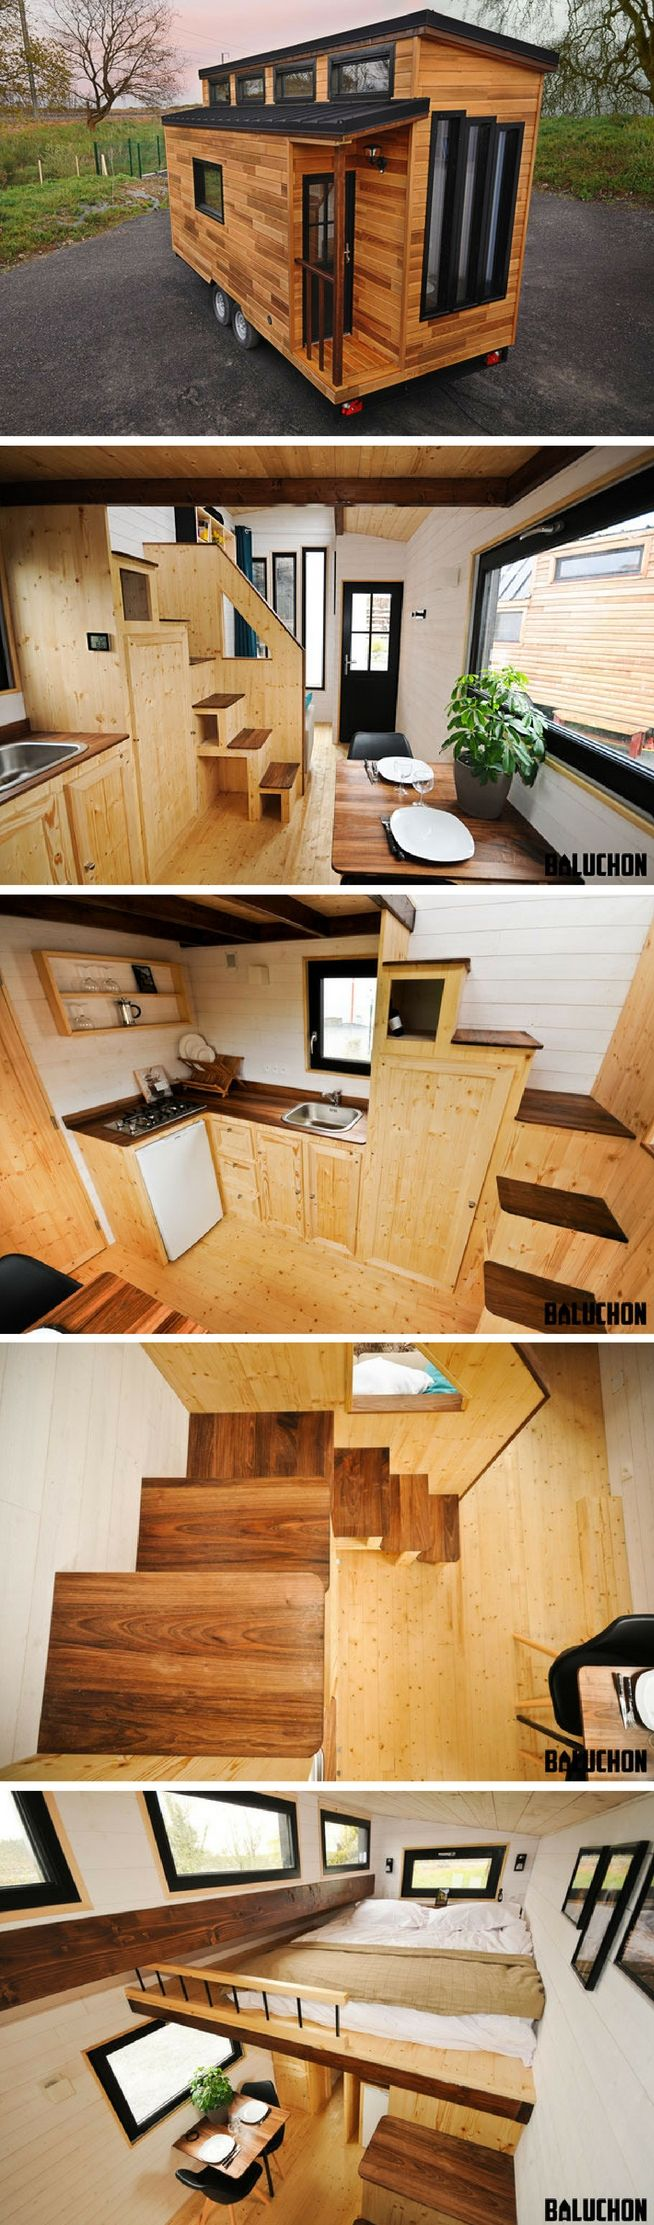 Cool Staircase Idea On This One. The Escapade: A Beautiful, Modern French Tiny  House